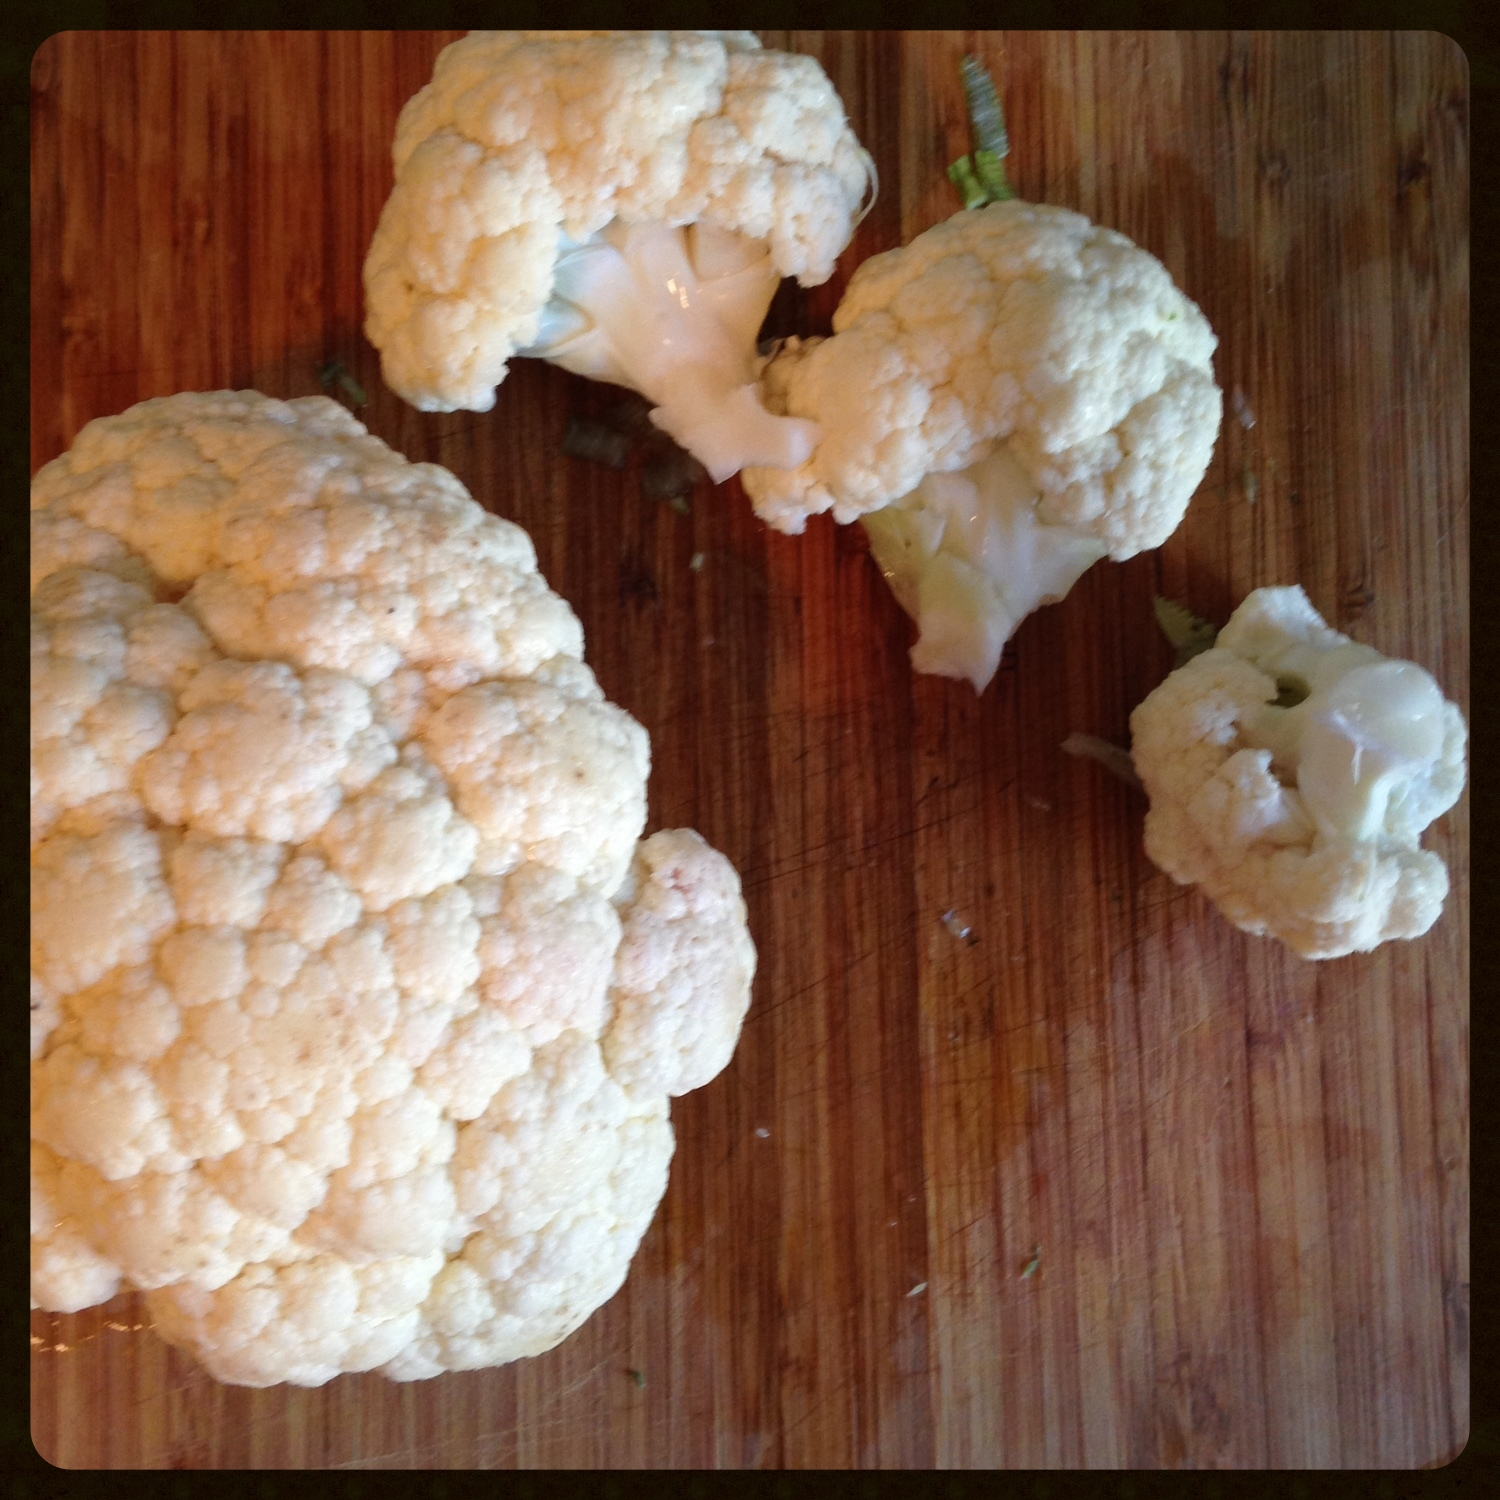 Separate the cauliflower into florets